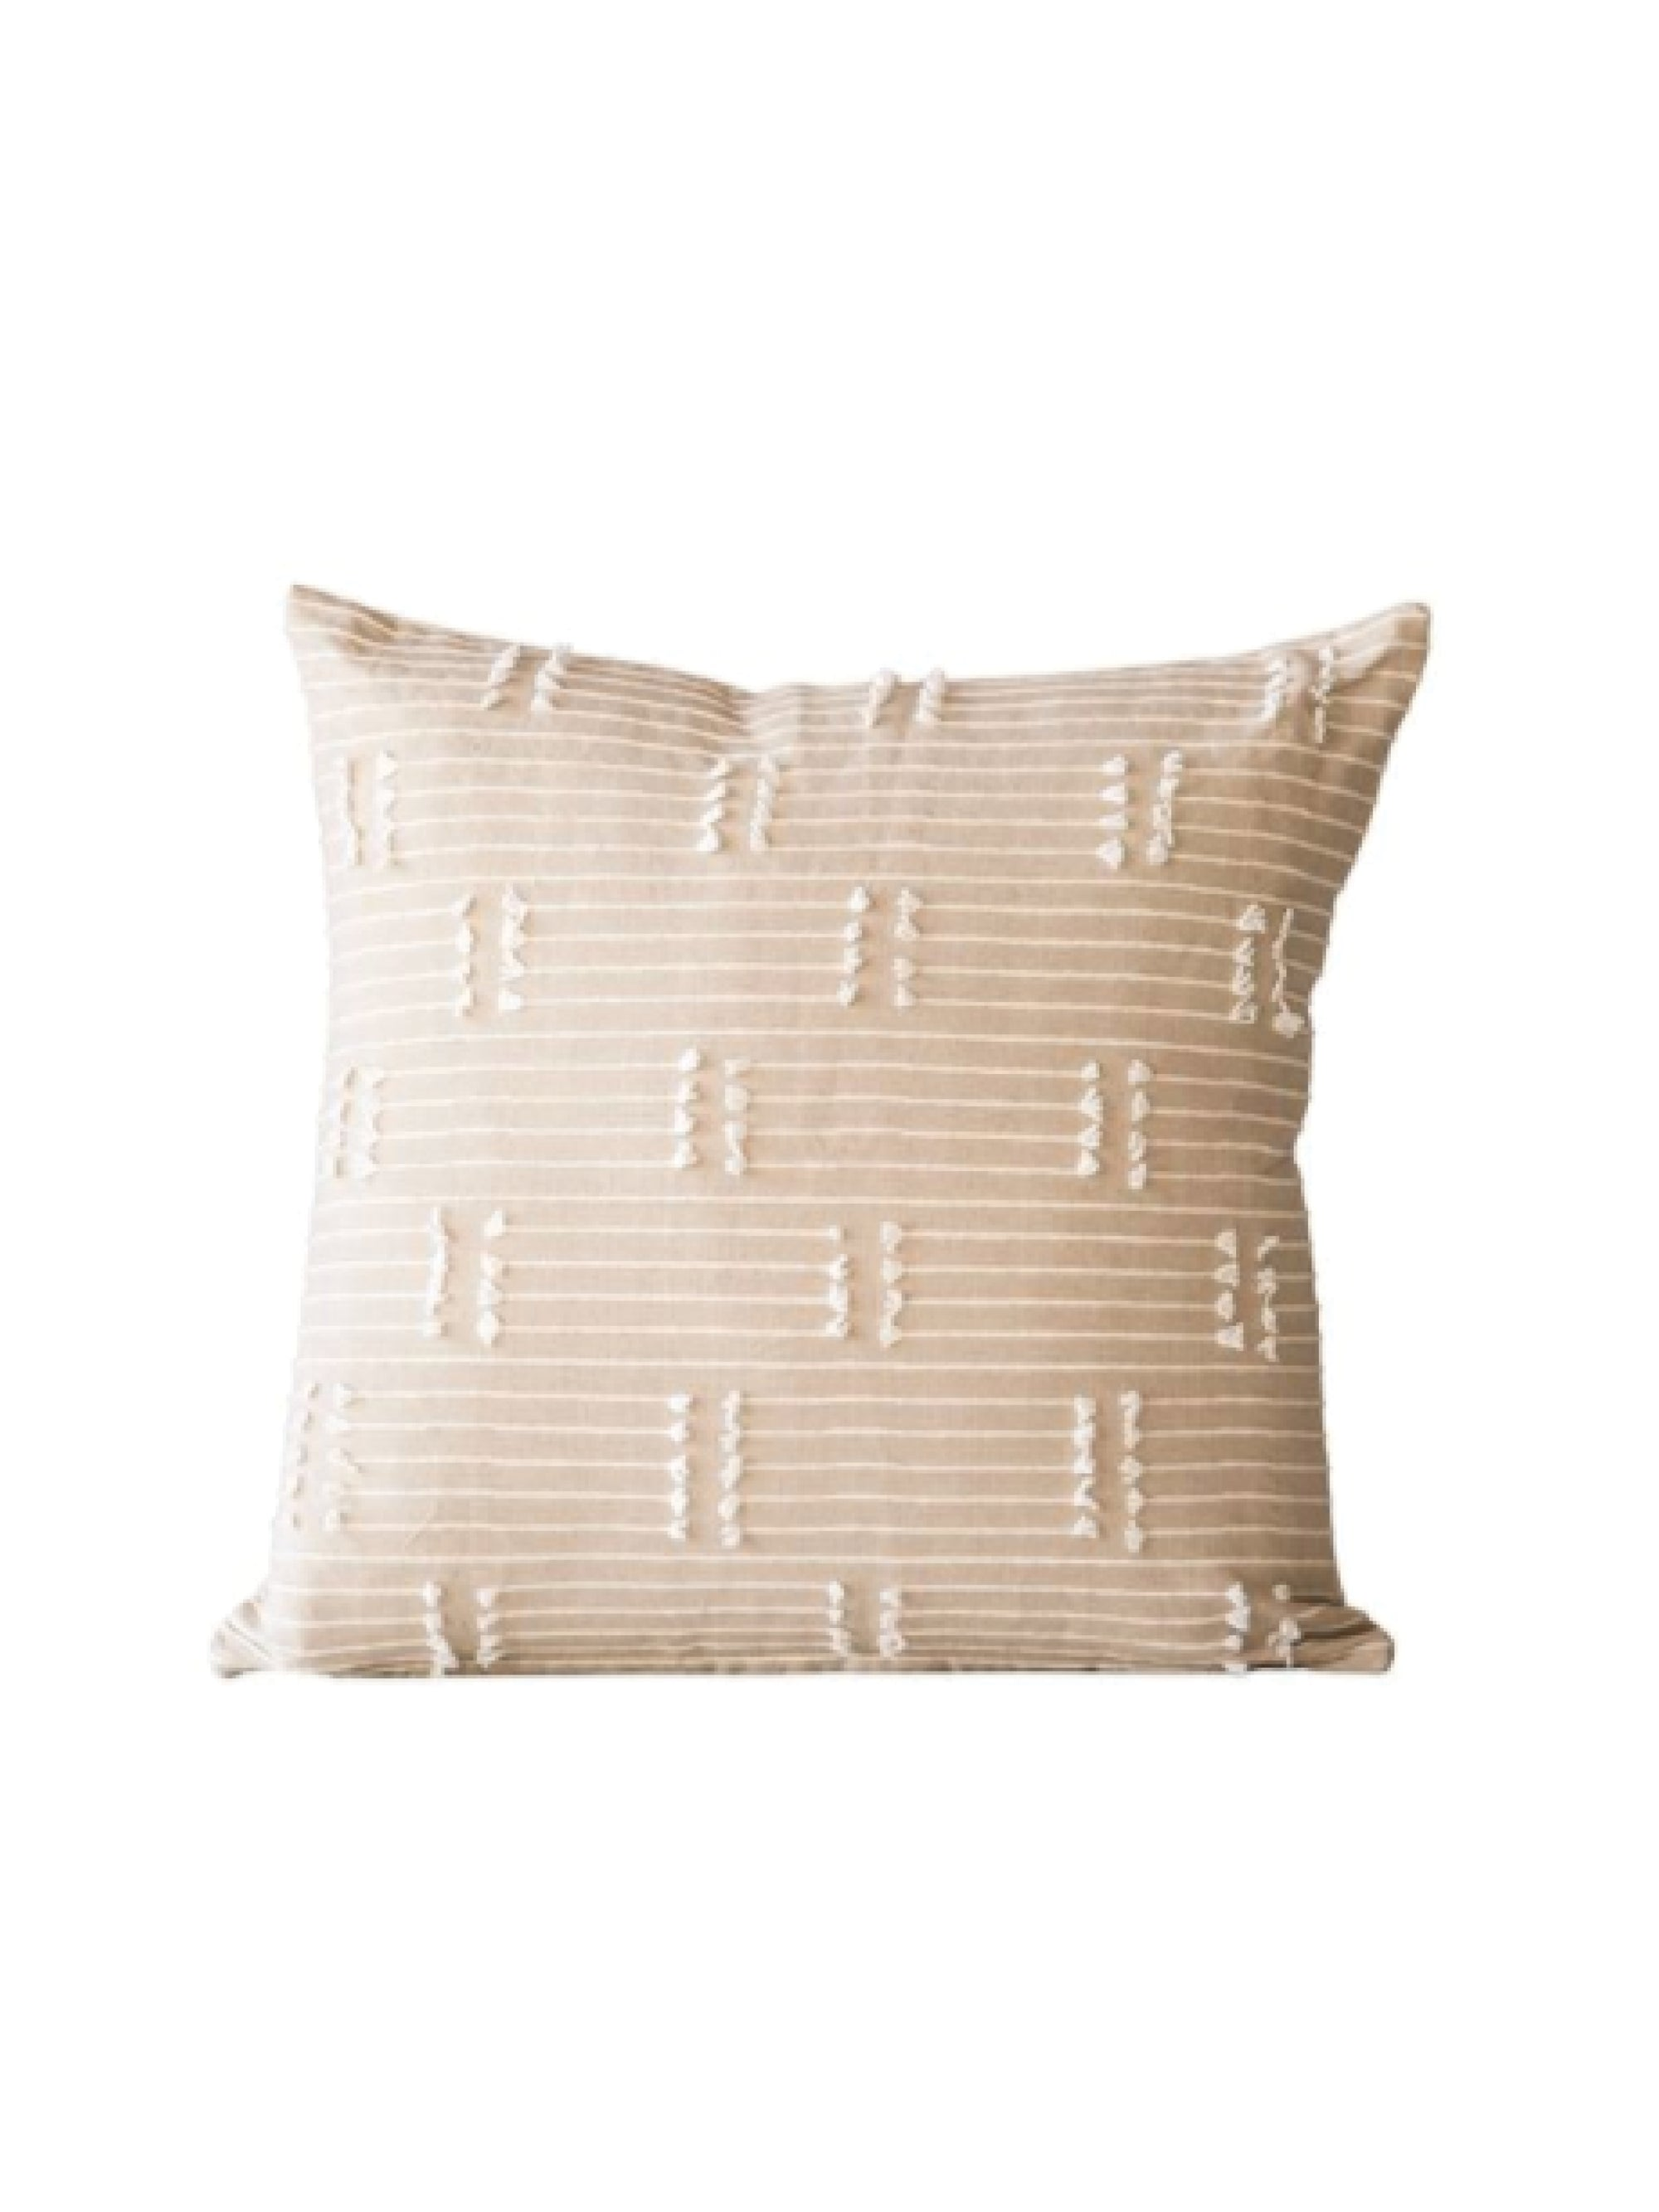 Taupe Woven Cotton Pillow w/ Tassels